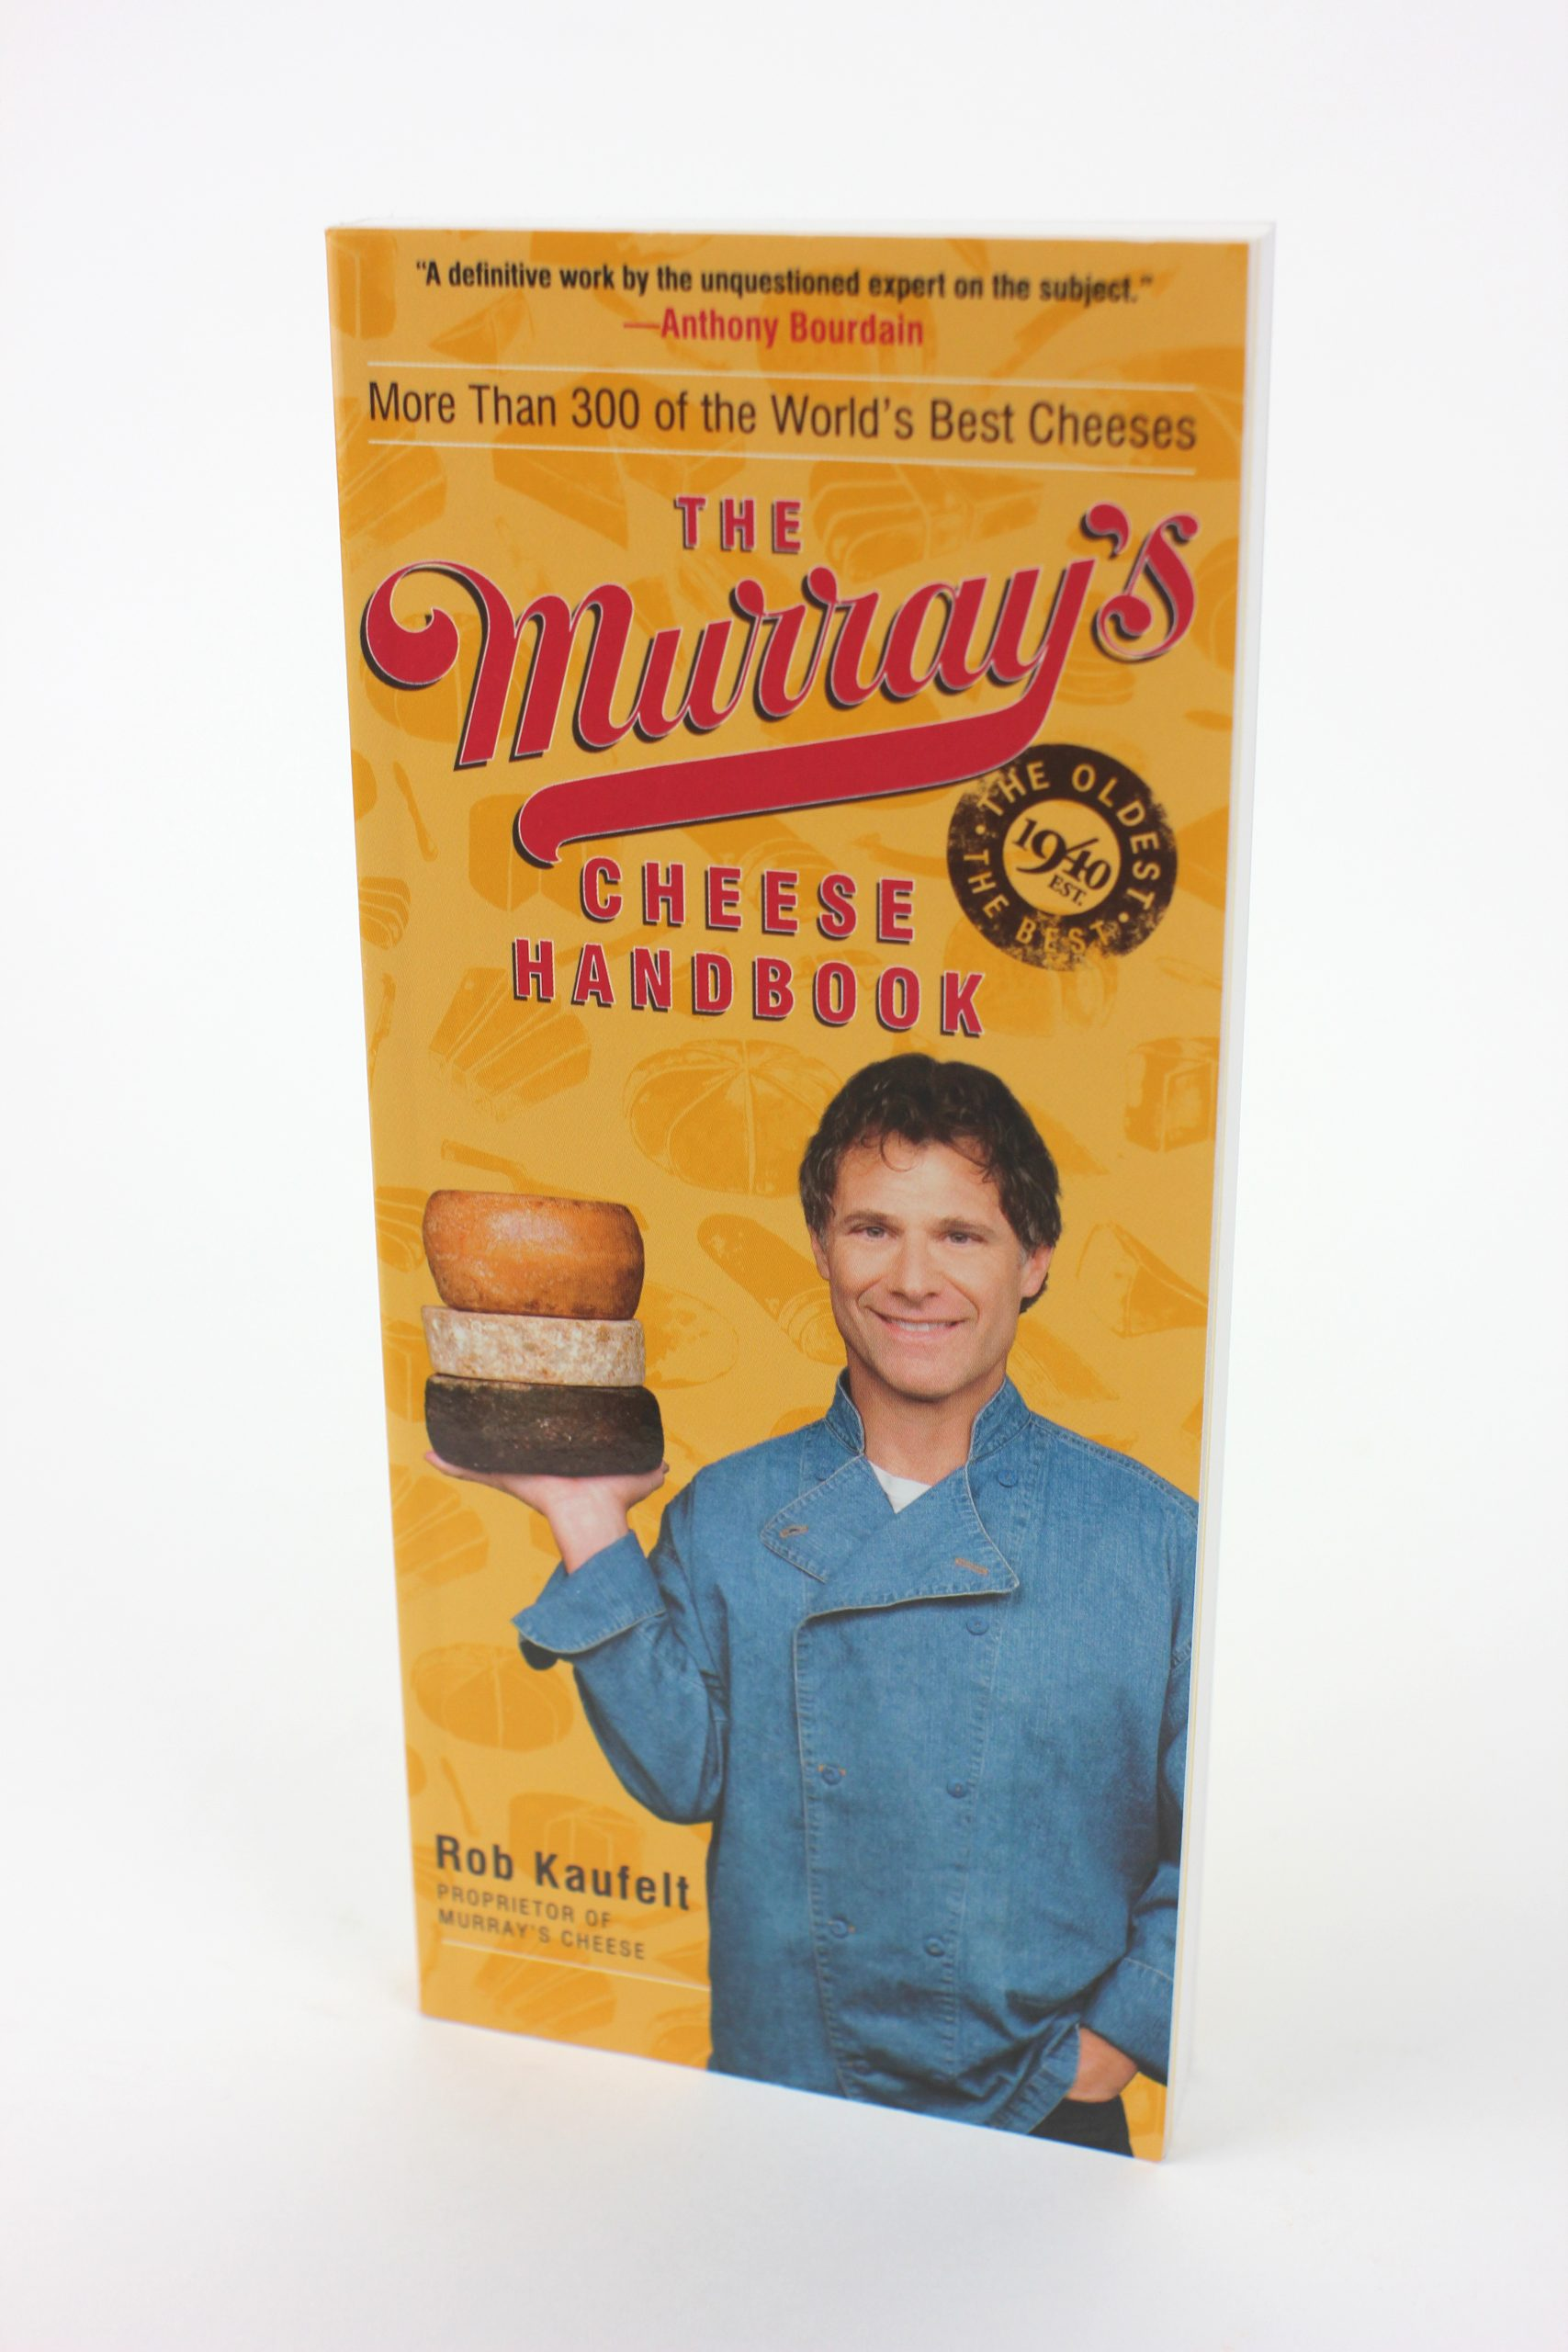 The Murrays Cheese: Handbook (1)